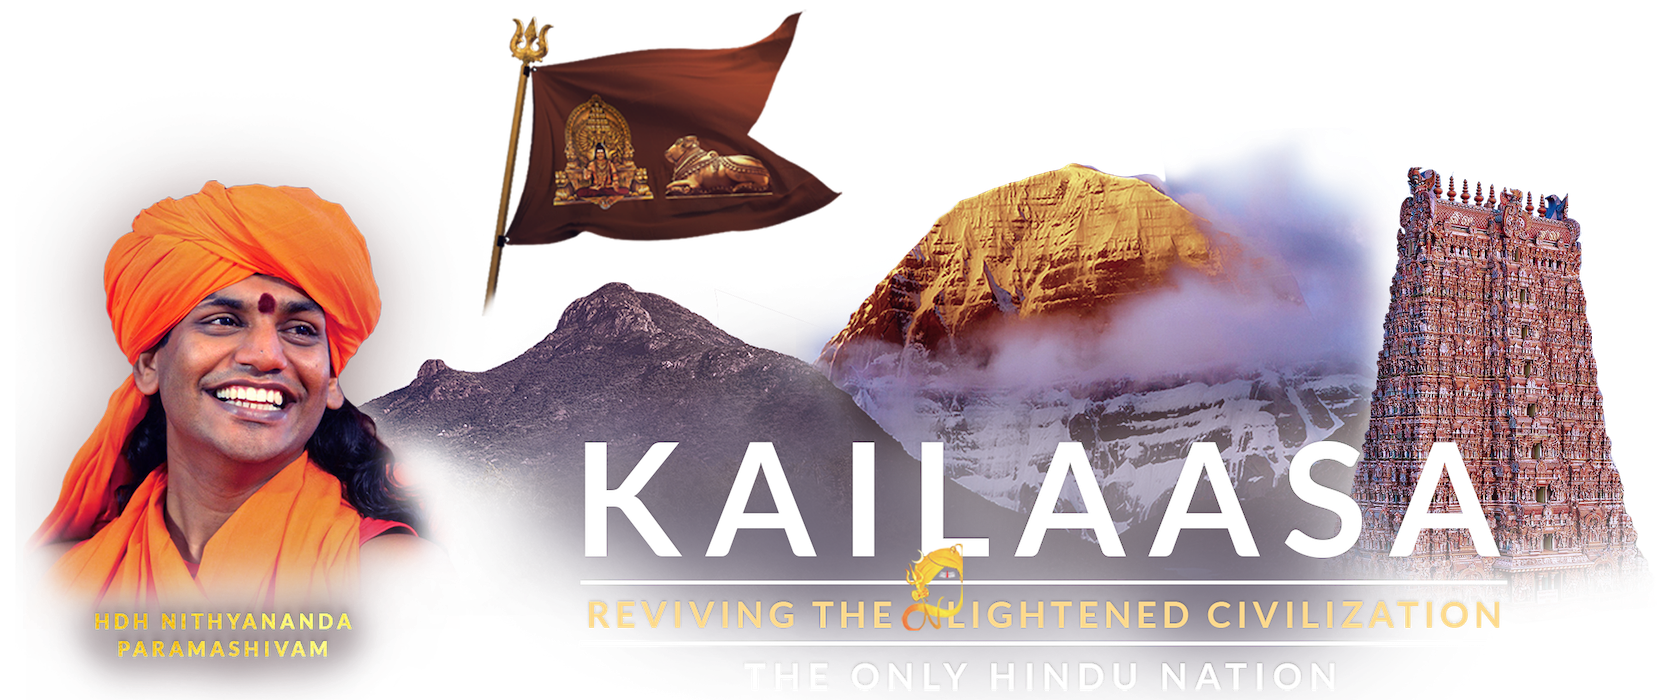 kailaasa-banner-elements-new3